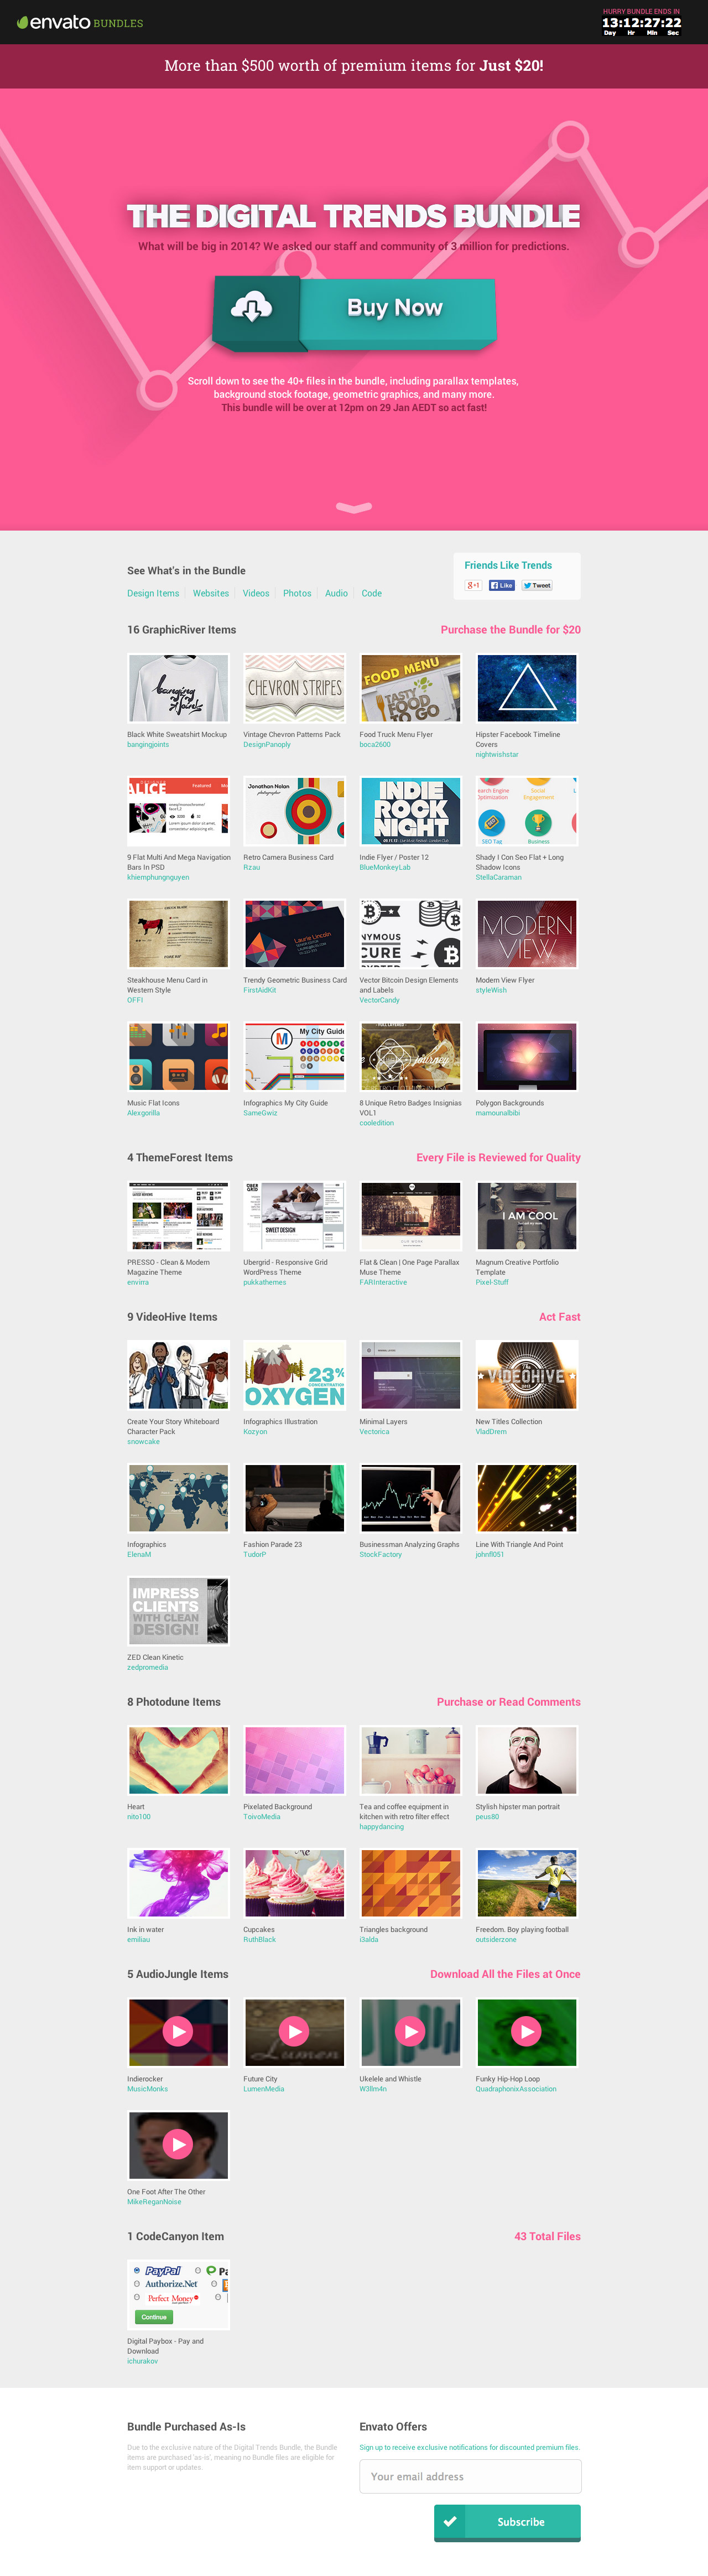 The Digital Trends Bundle Website Screenshot